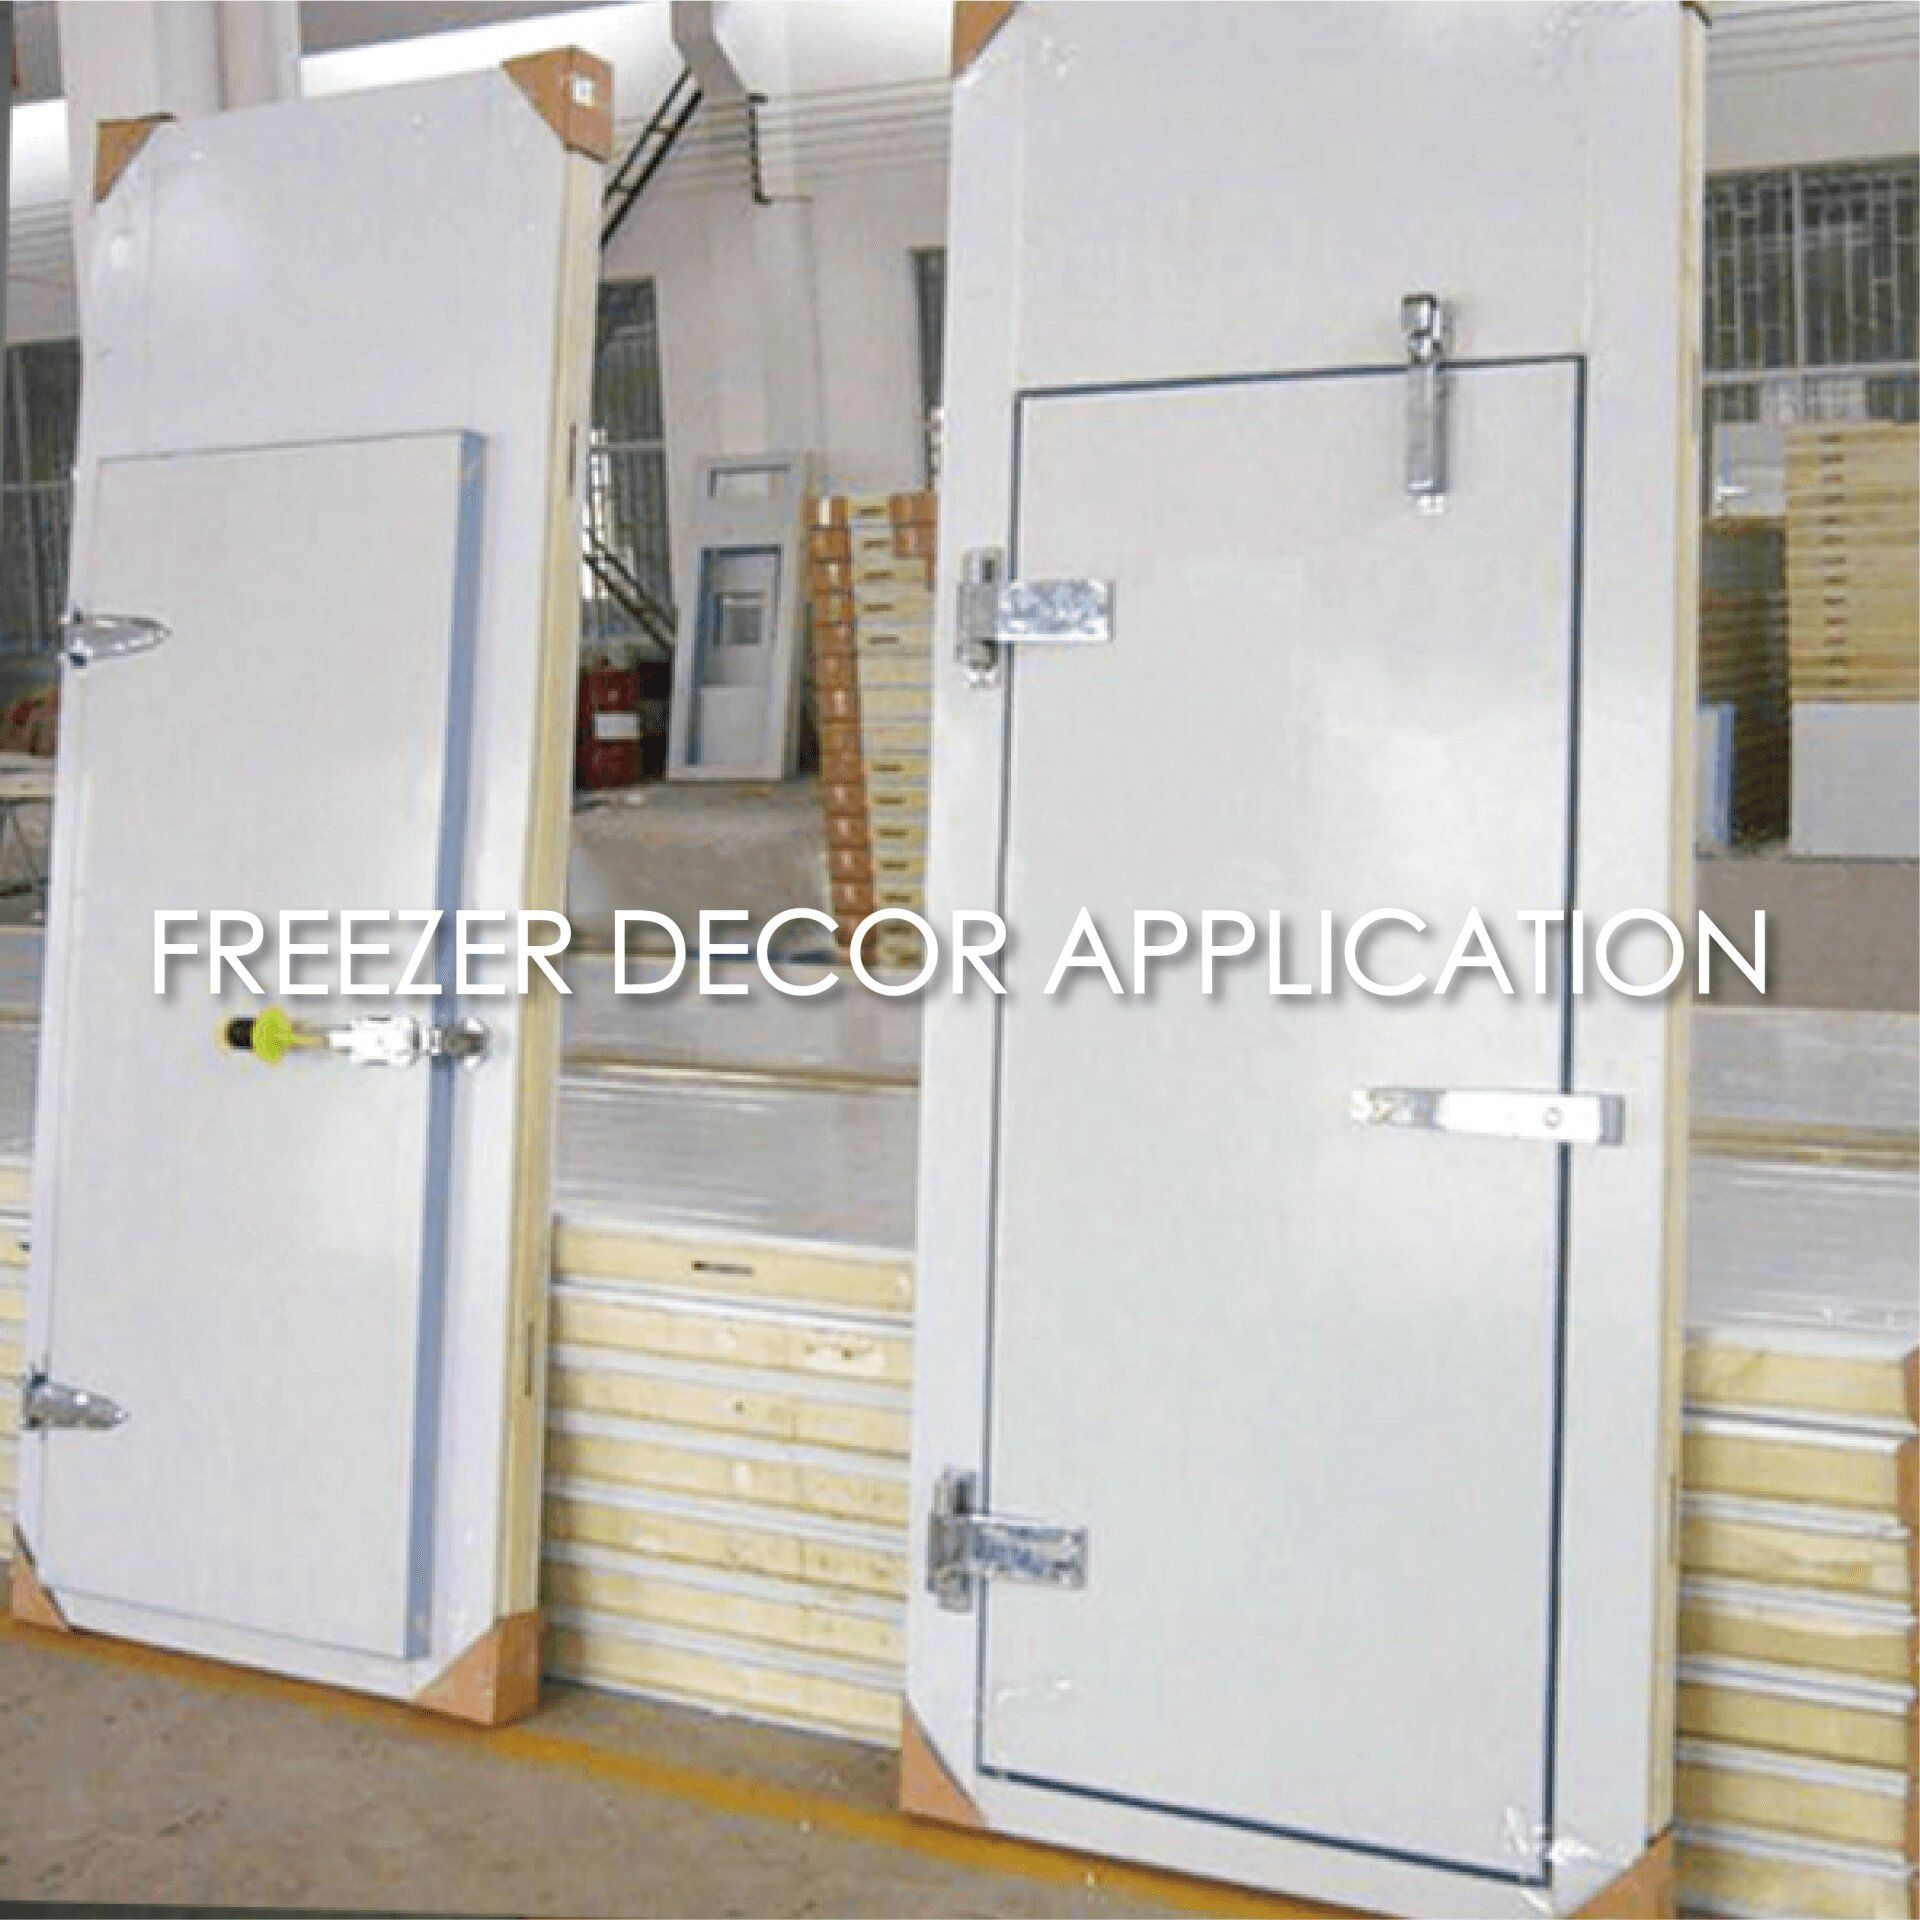 Using laminated metal to make a freezer plate can create the aesthetics and durability.